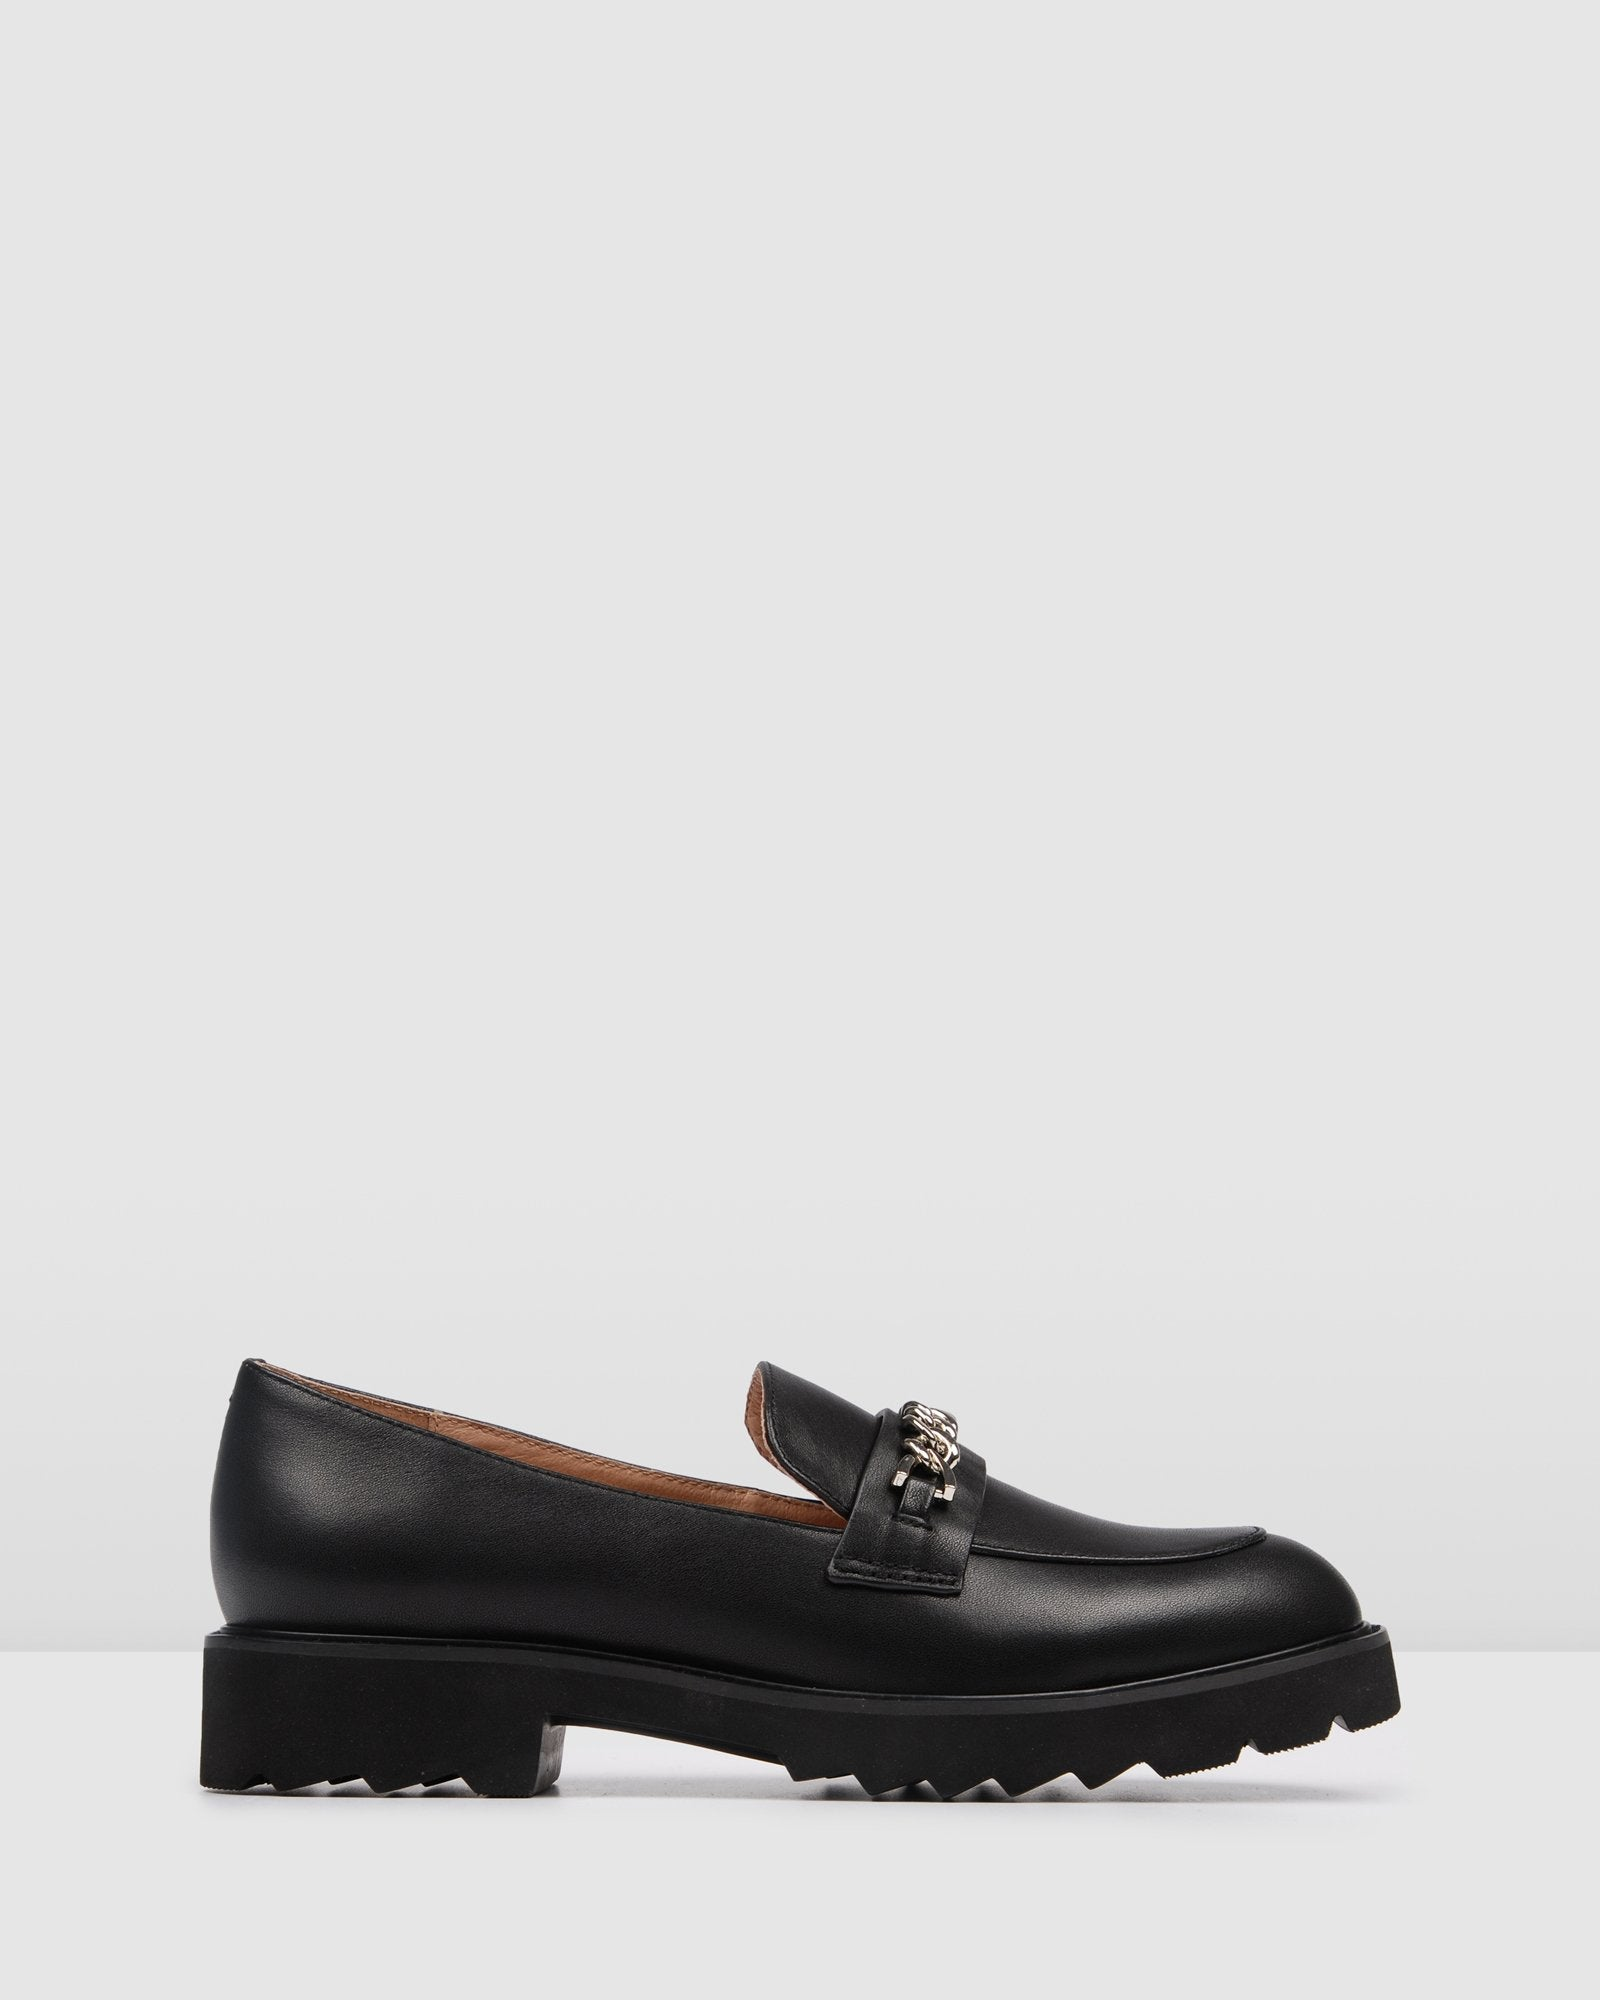 SHILO LOAFERS BLACK LEATHER